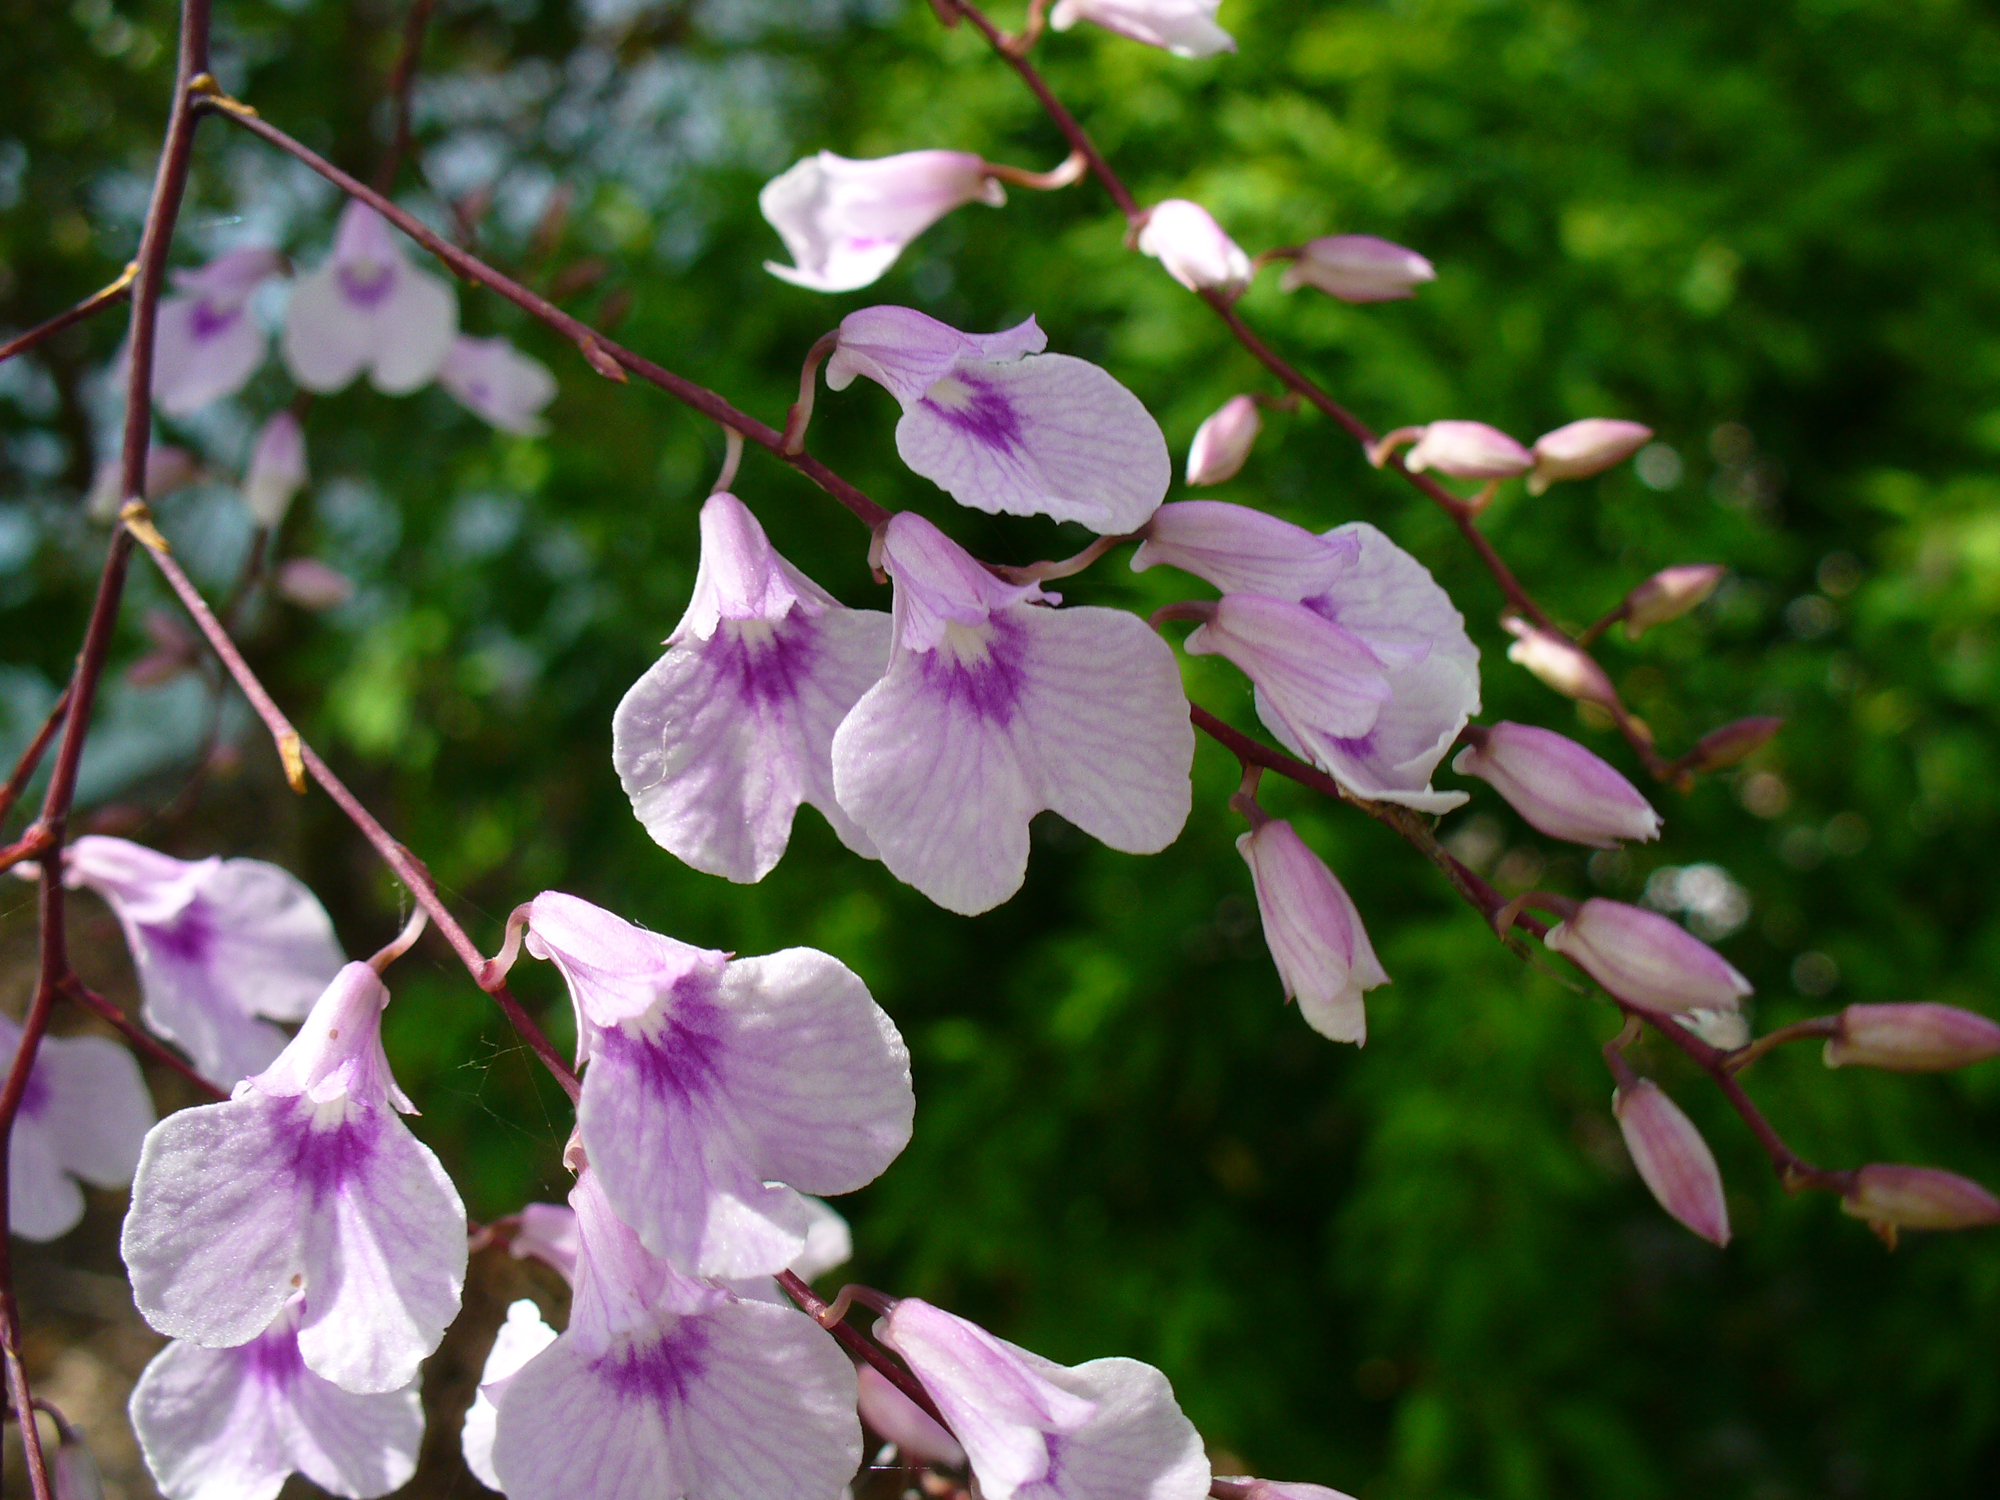 Image of delicate violet orchid